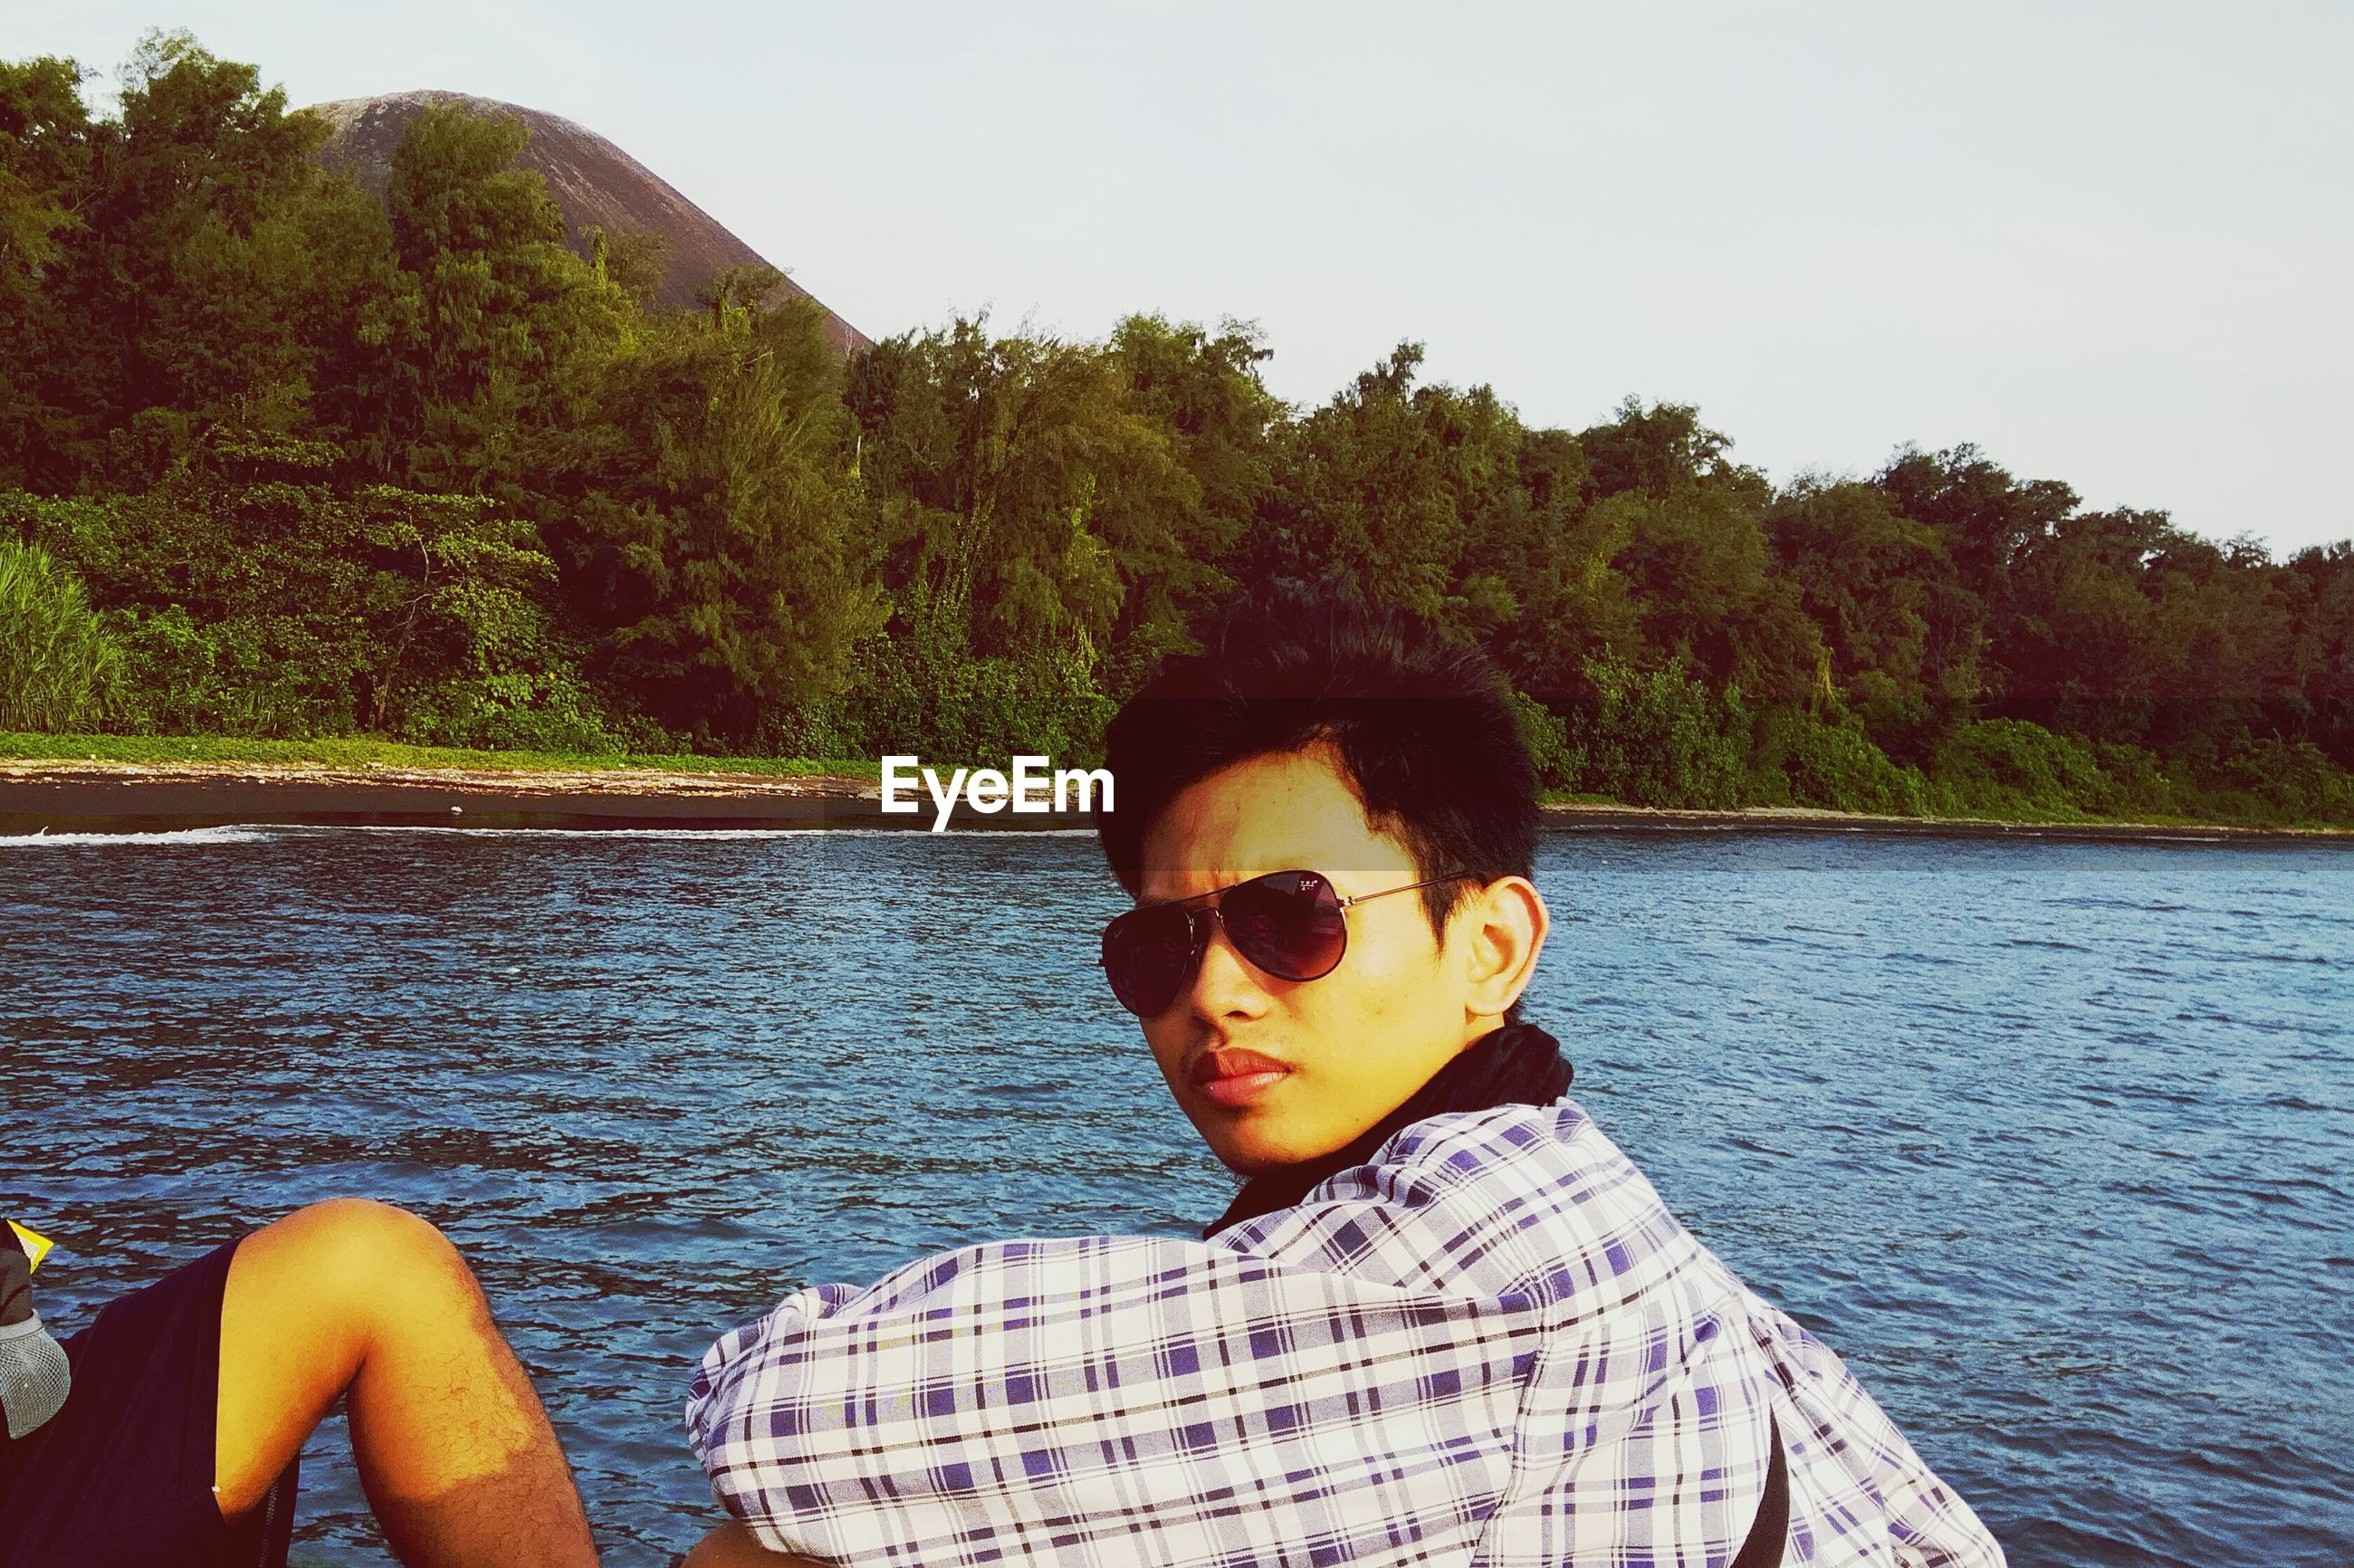 Portrait of young man wearing sunglasses against lake